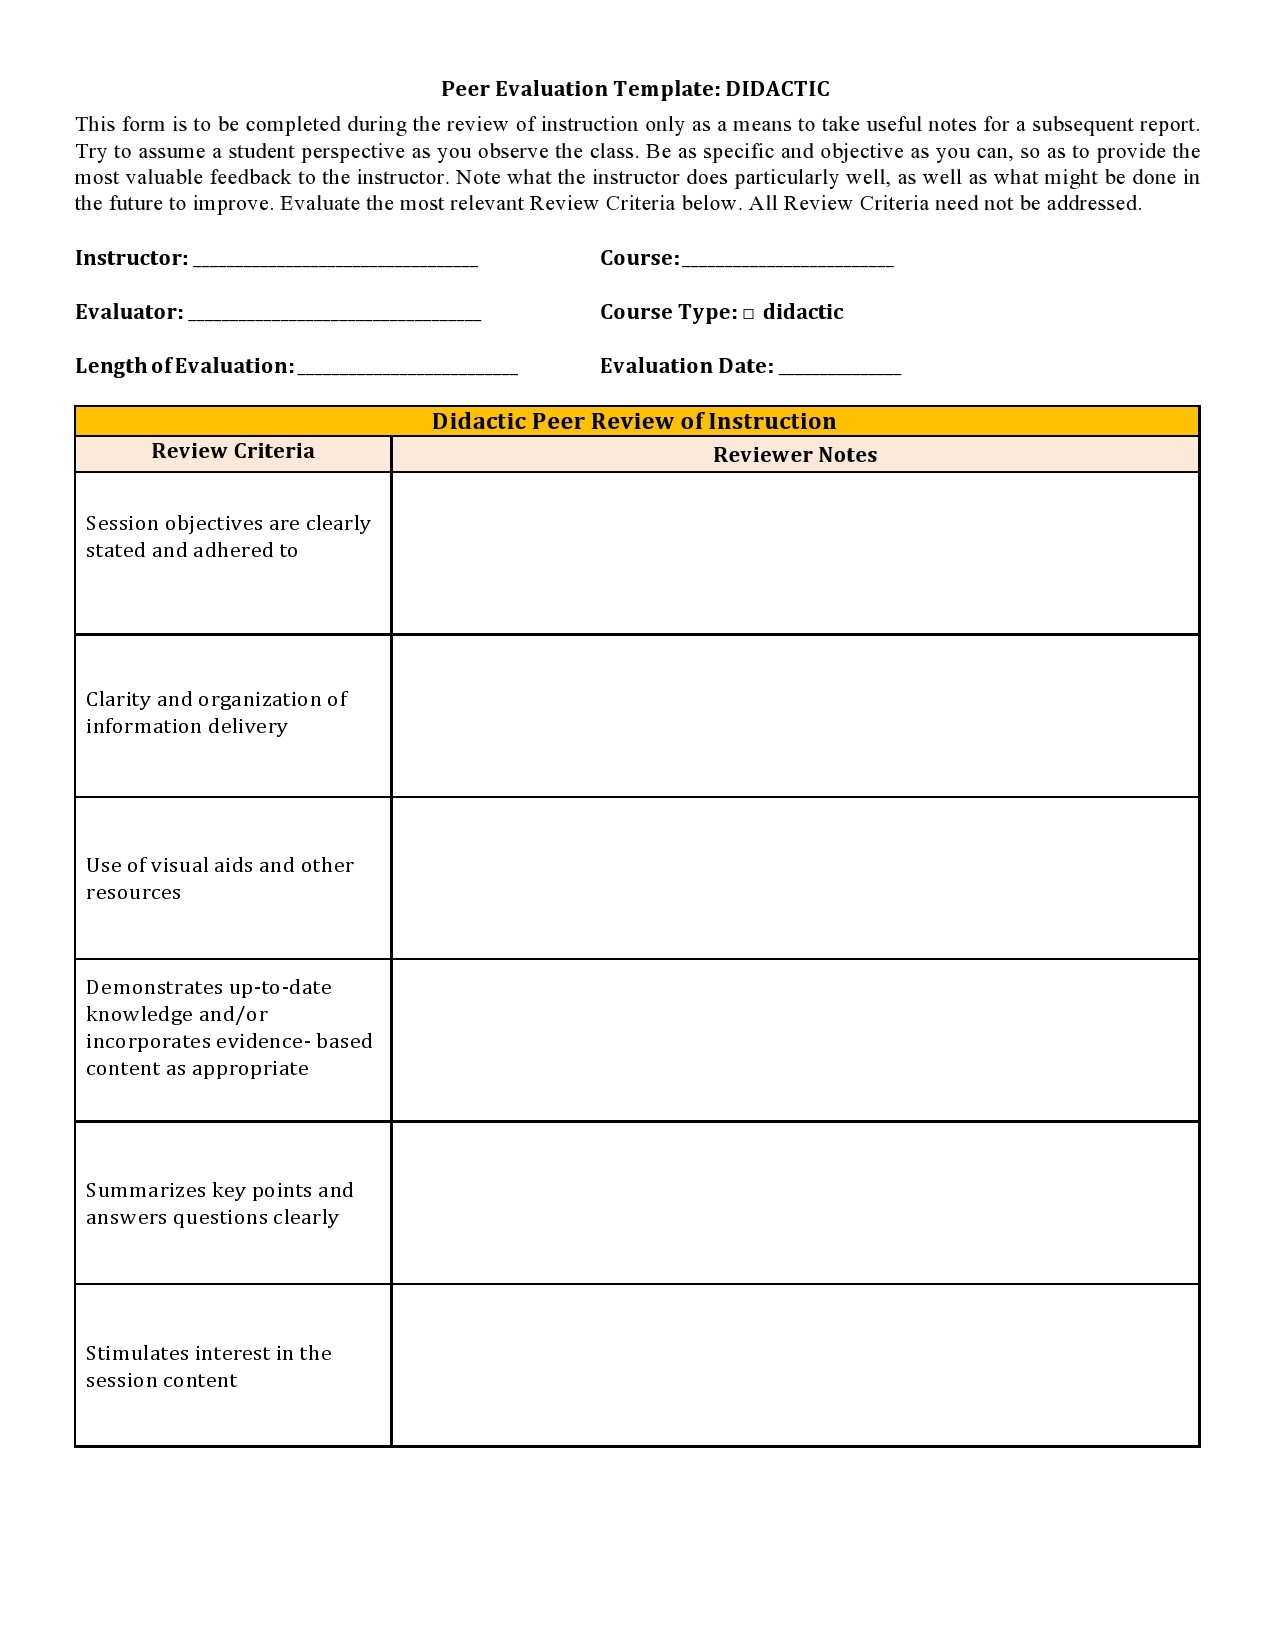 Free peer evaluation form 10